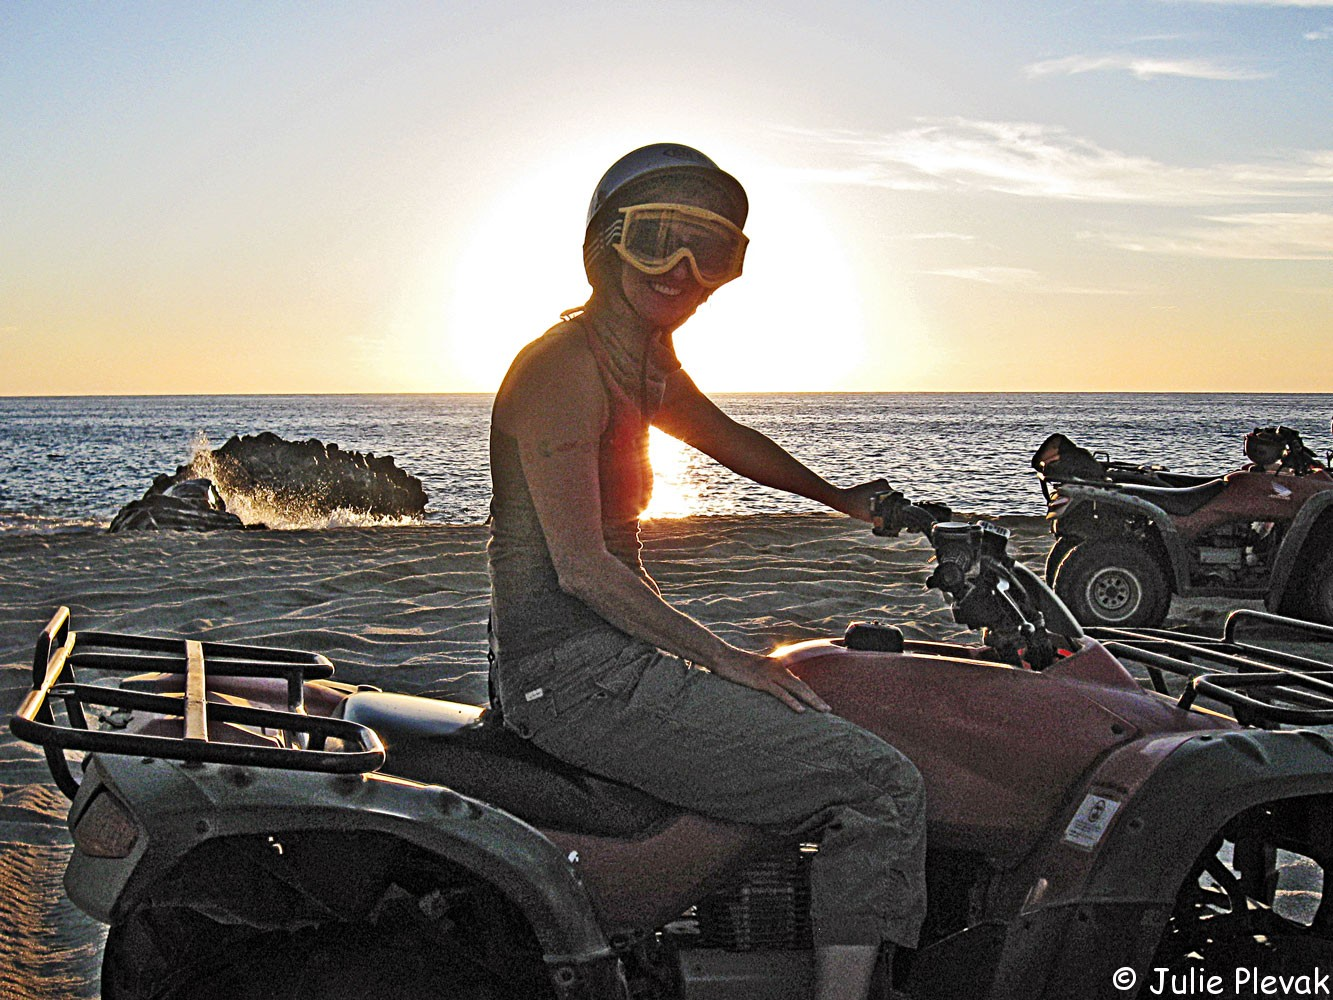 Cabo San Lucas, ATV ride on the beach, Mexico